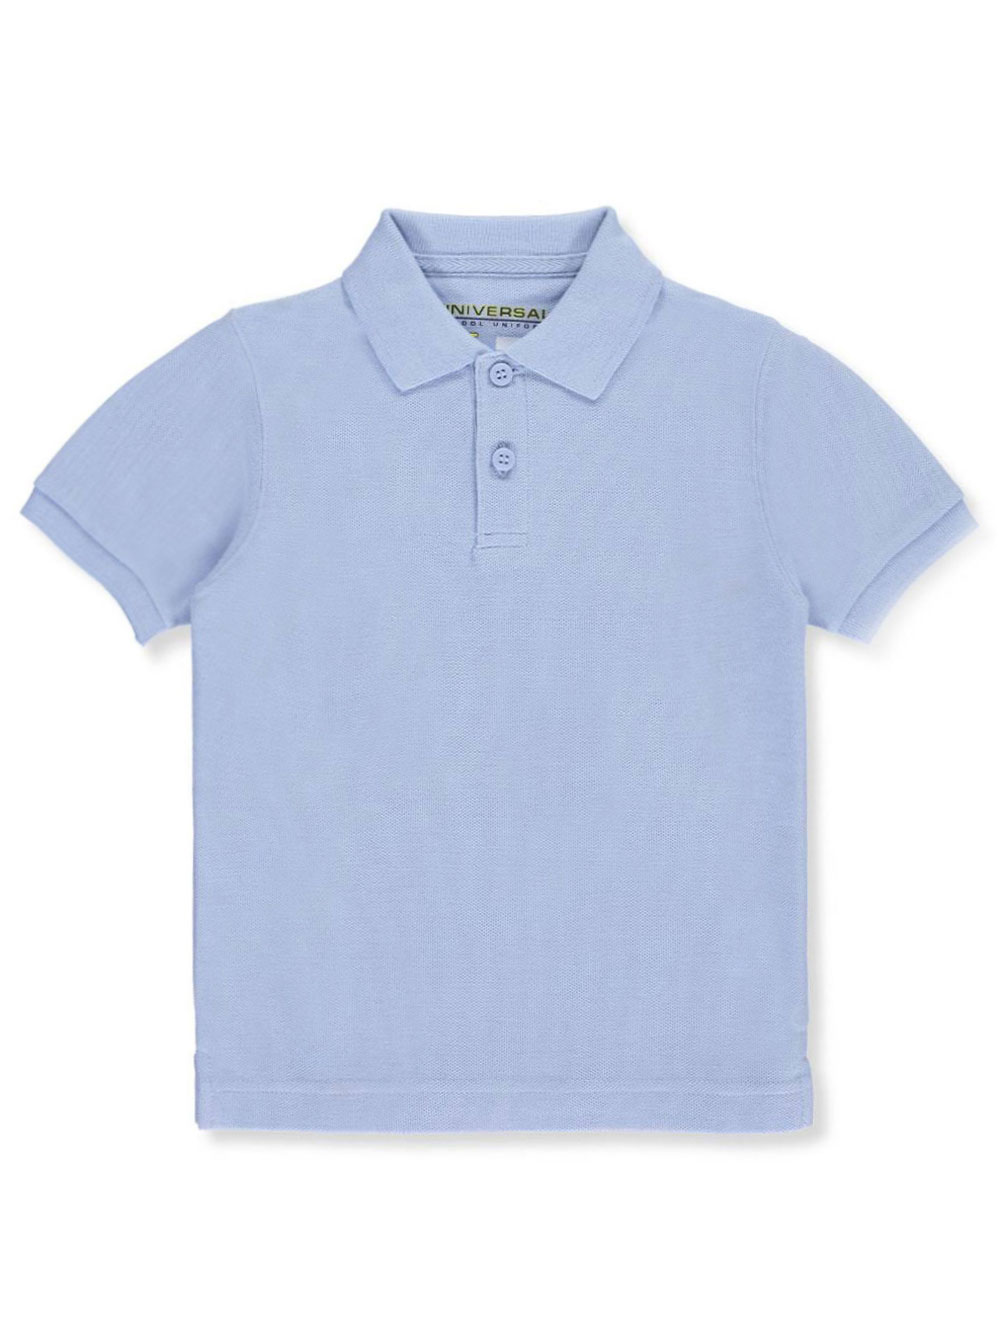 Universal Little Boys' S/S Pique Polo (Sizes 4 - 7)